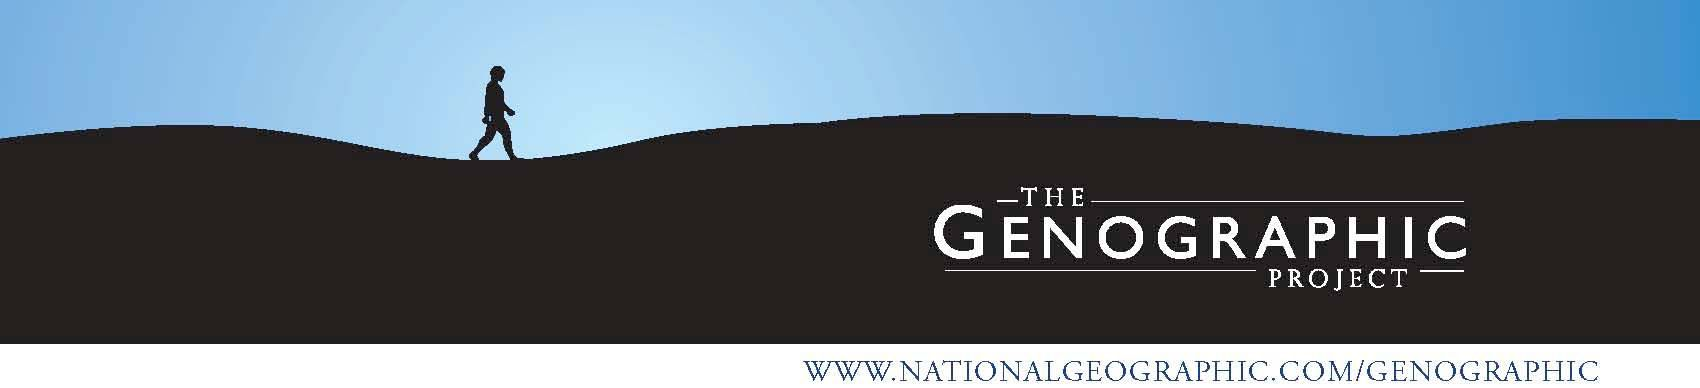 National geographic geno project